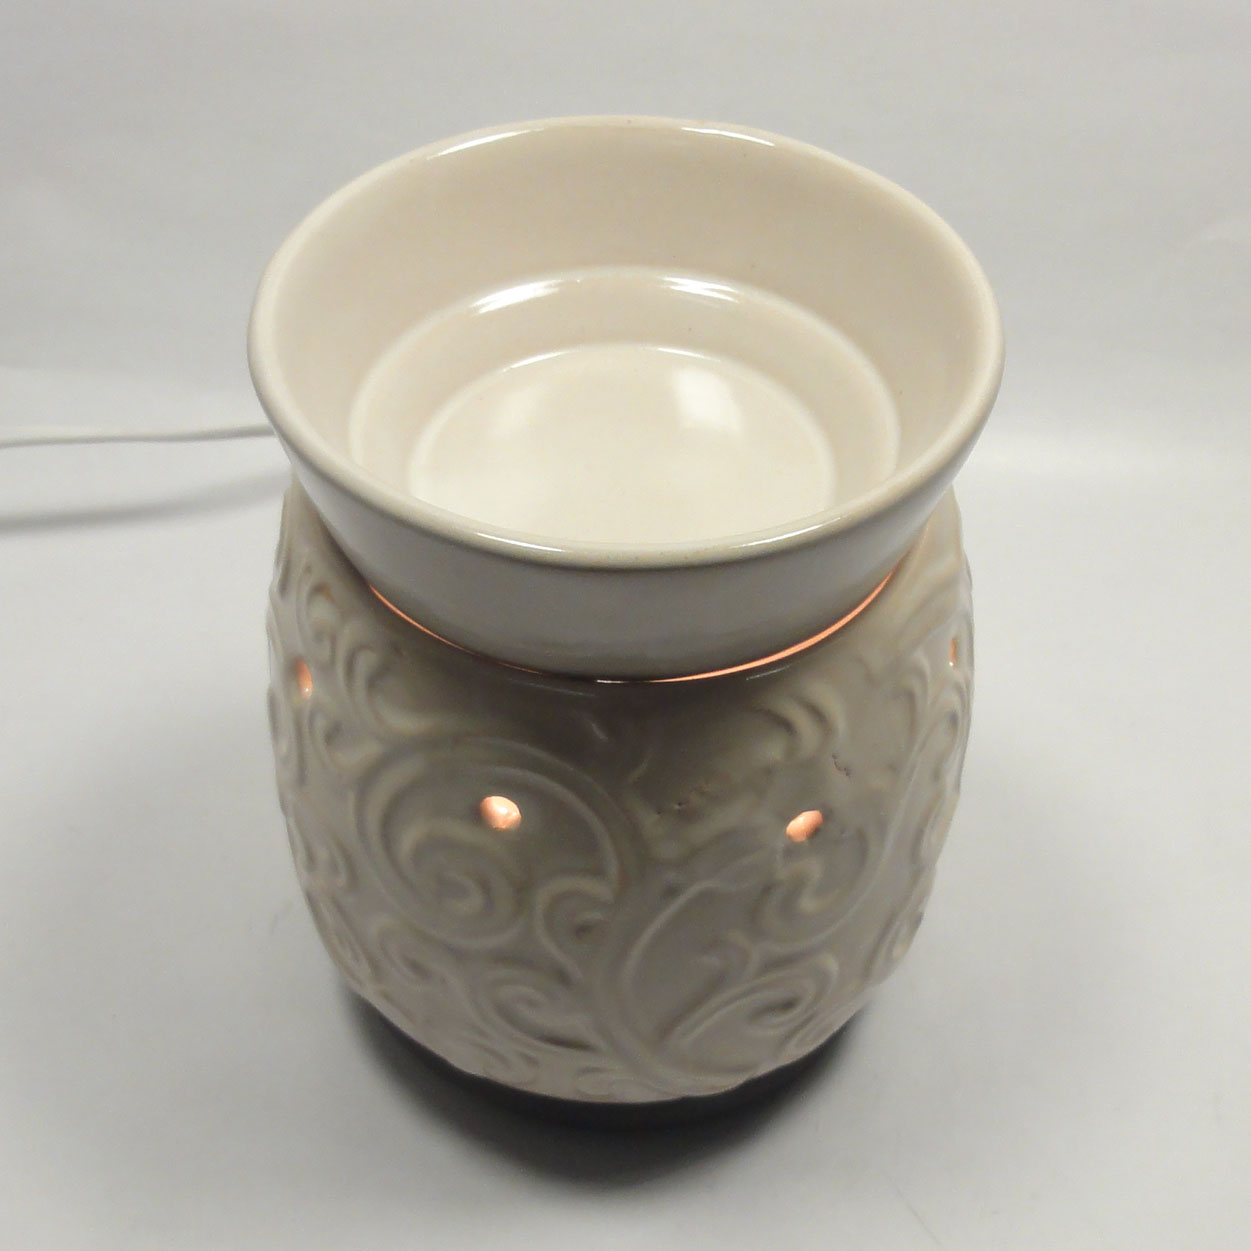 Classic Ceramic Electric Scent Oil Tart Warmer Diffuser